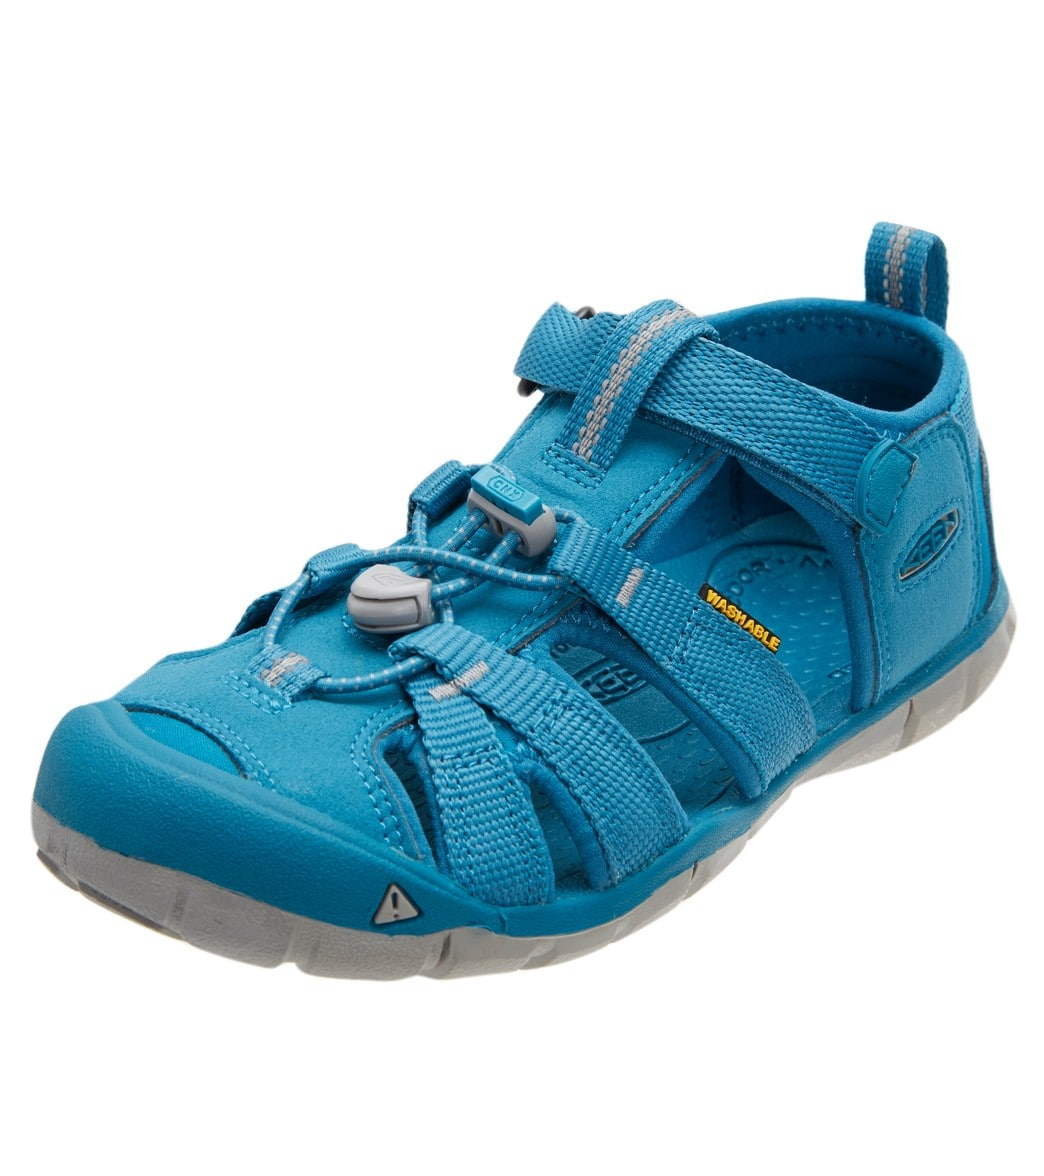 ed19daff504 Keen Youth's Seacamp II CNX Water Shoes at SwimOutlet.com - Free Shipping